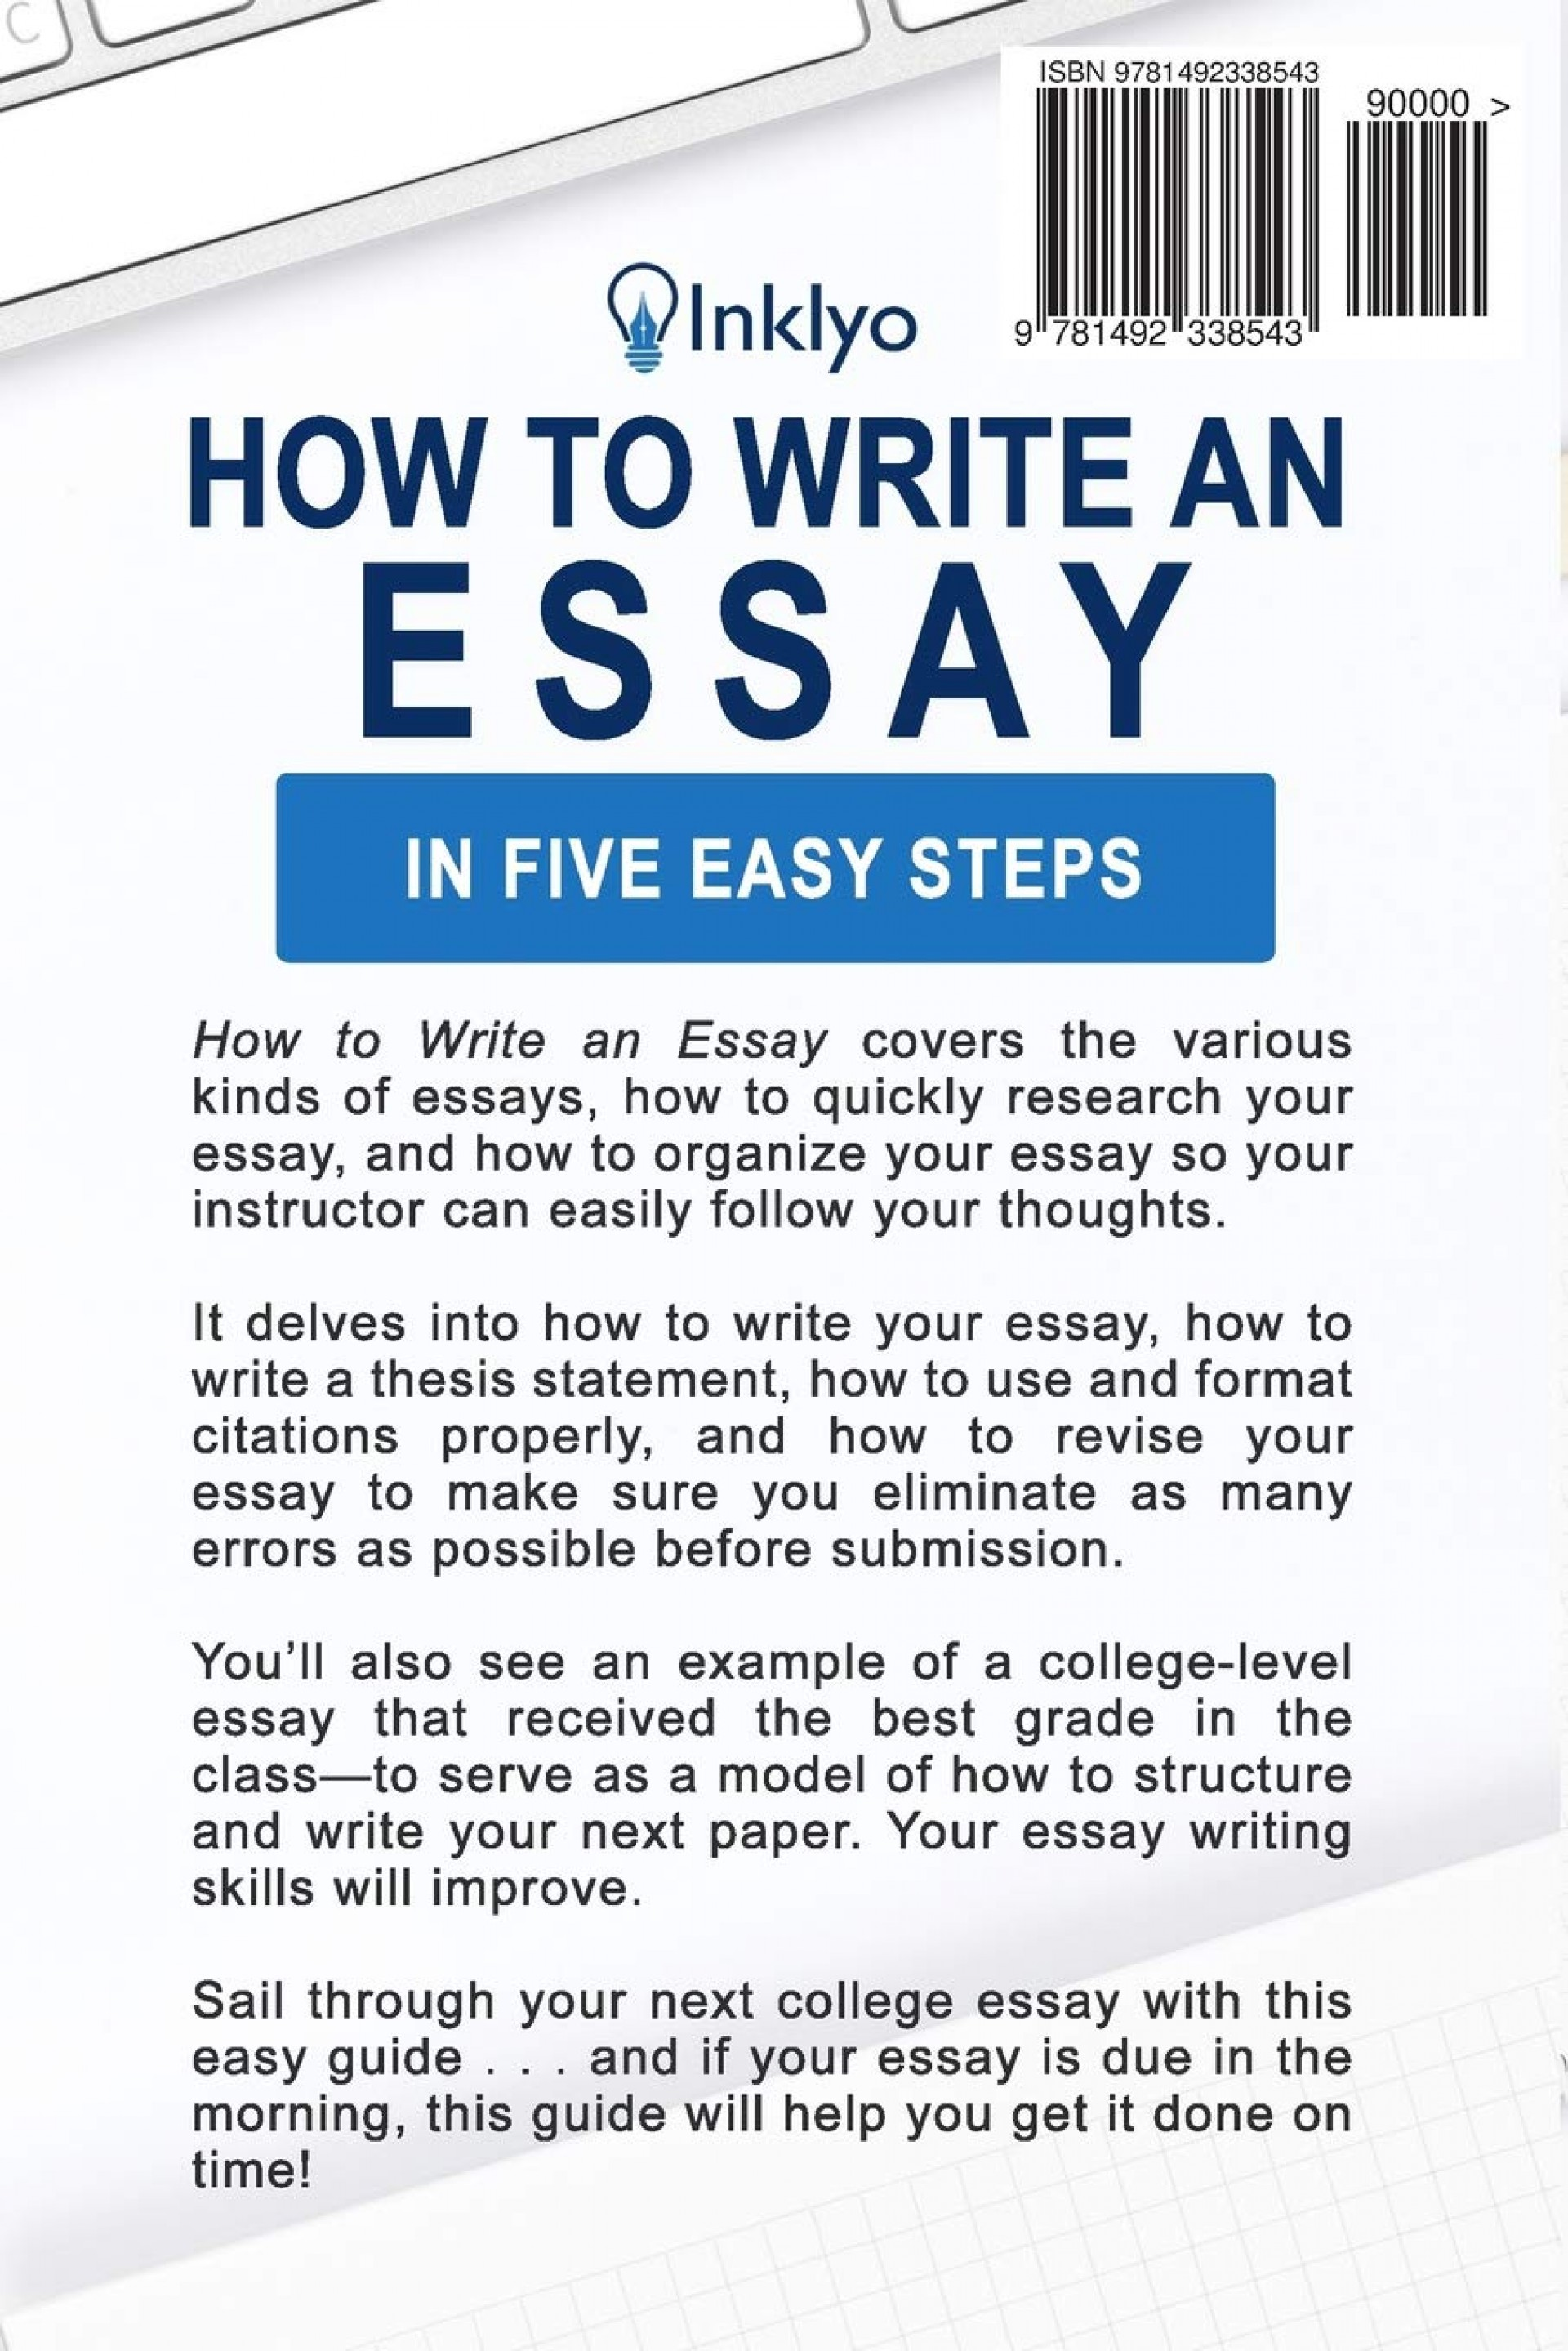 006 71v7ckw5pll How To Write An Essay Quickly Unbelievable Academic English Fast A Paper 1920